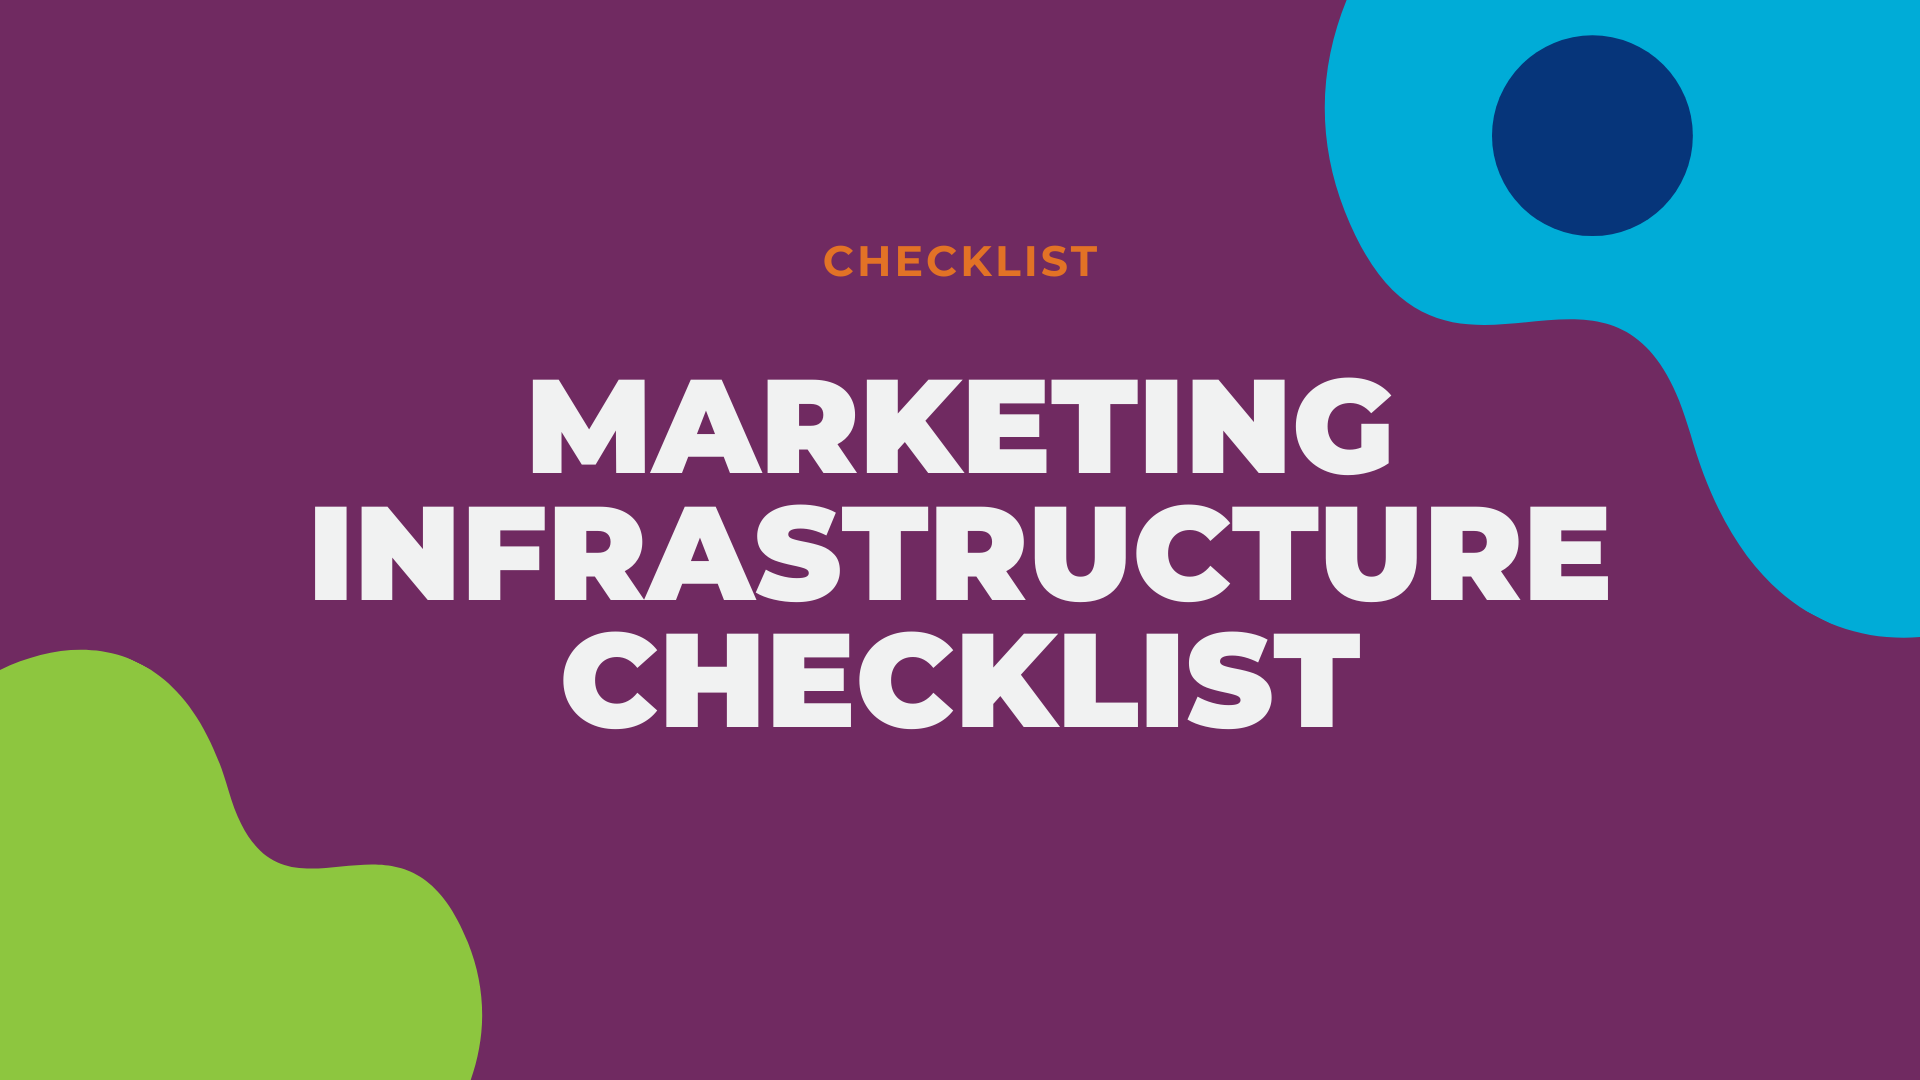 LG2 Website Resource - MARKETING INFRASTRUCTURE CHECKLIST